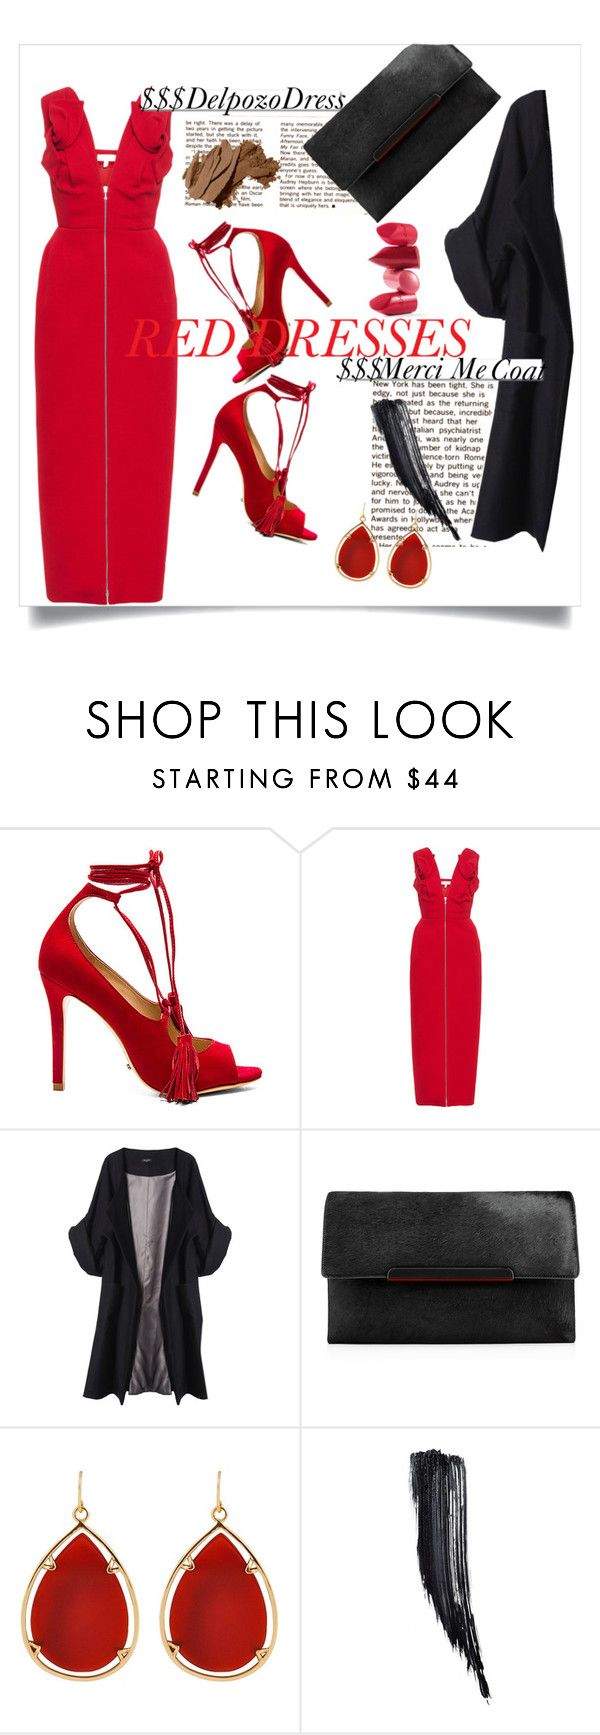 """""""Untitled #733"""" by meelstyle ❤ liked on Polyvore featuring Schutz, Delpozo, Merci Me London, White Label, Christian Louboutin, Barse, Rossetto, Tom Ford, Bobbi Brown Cosmetics and women's clothing"""